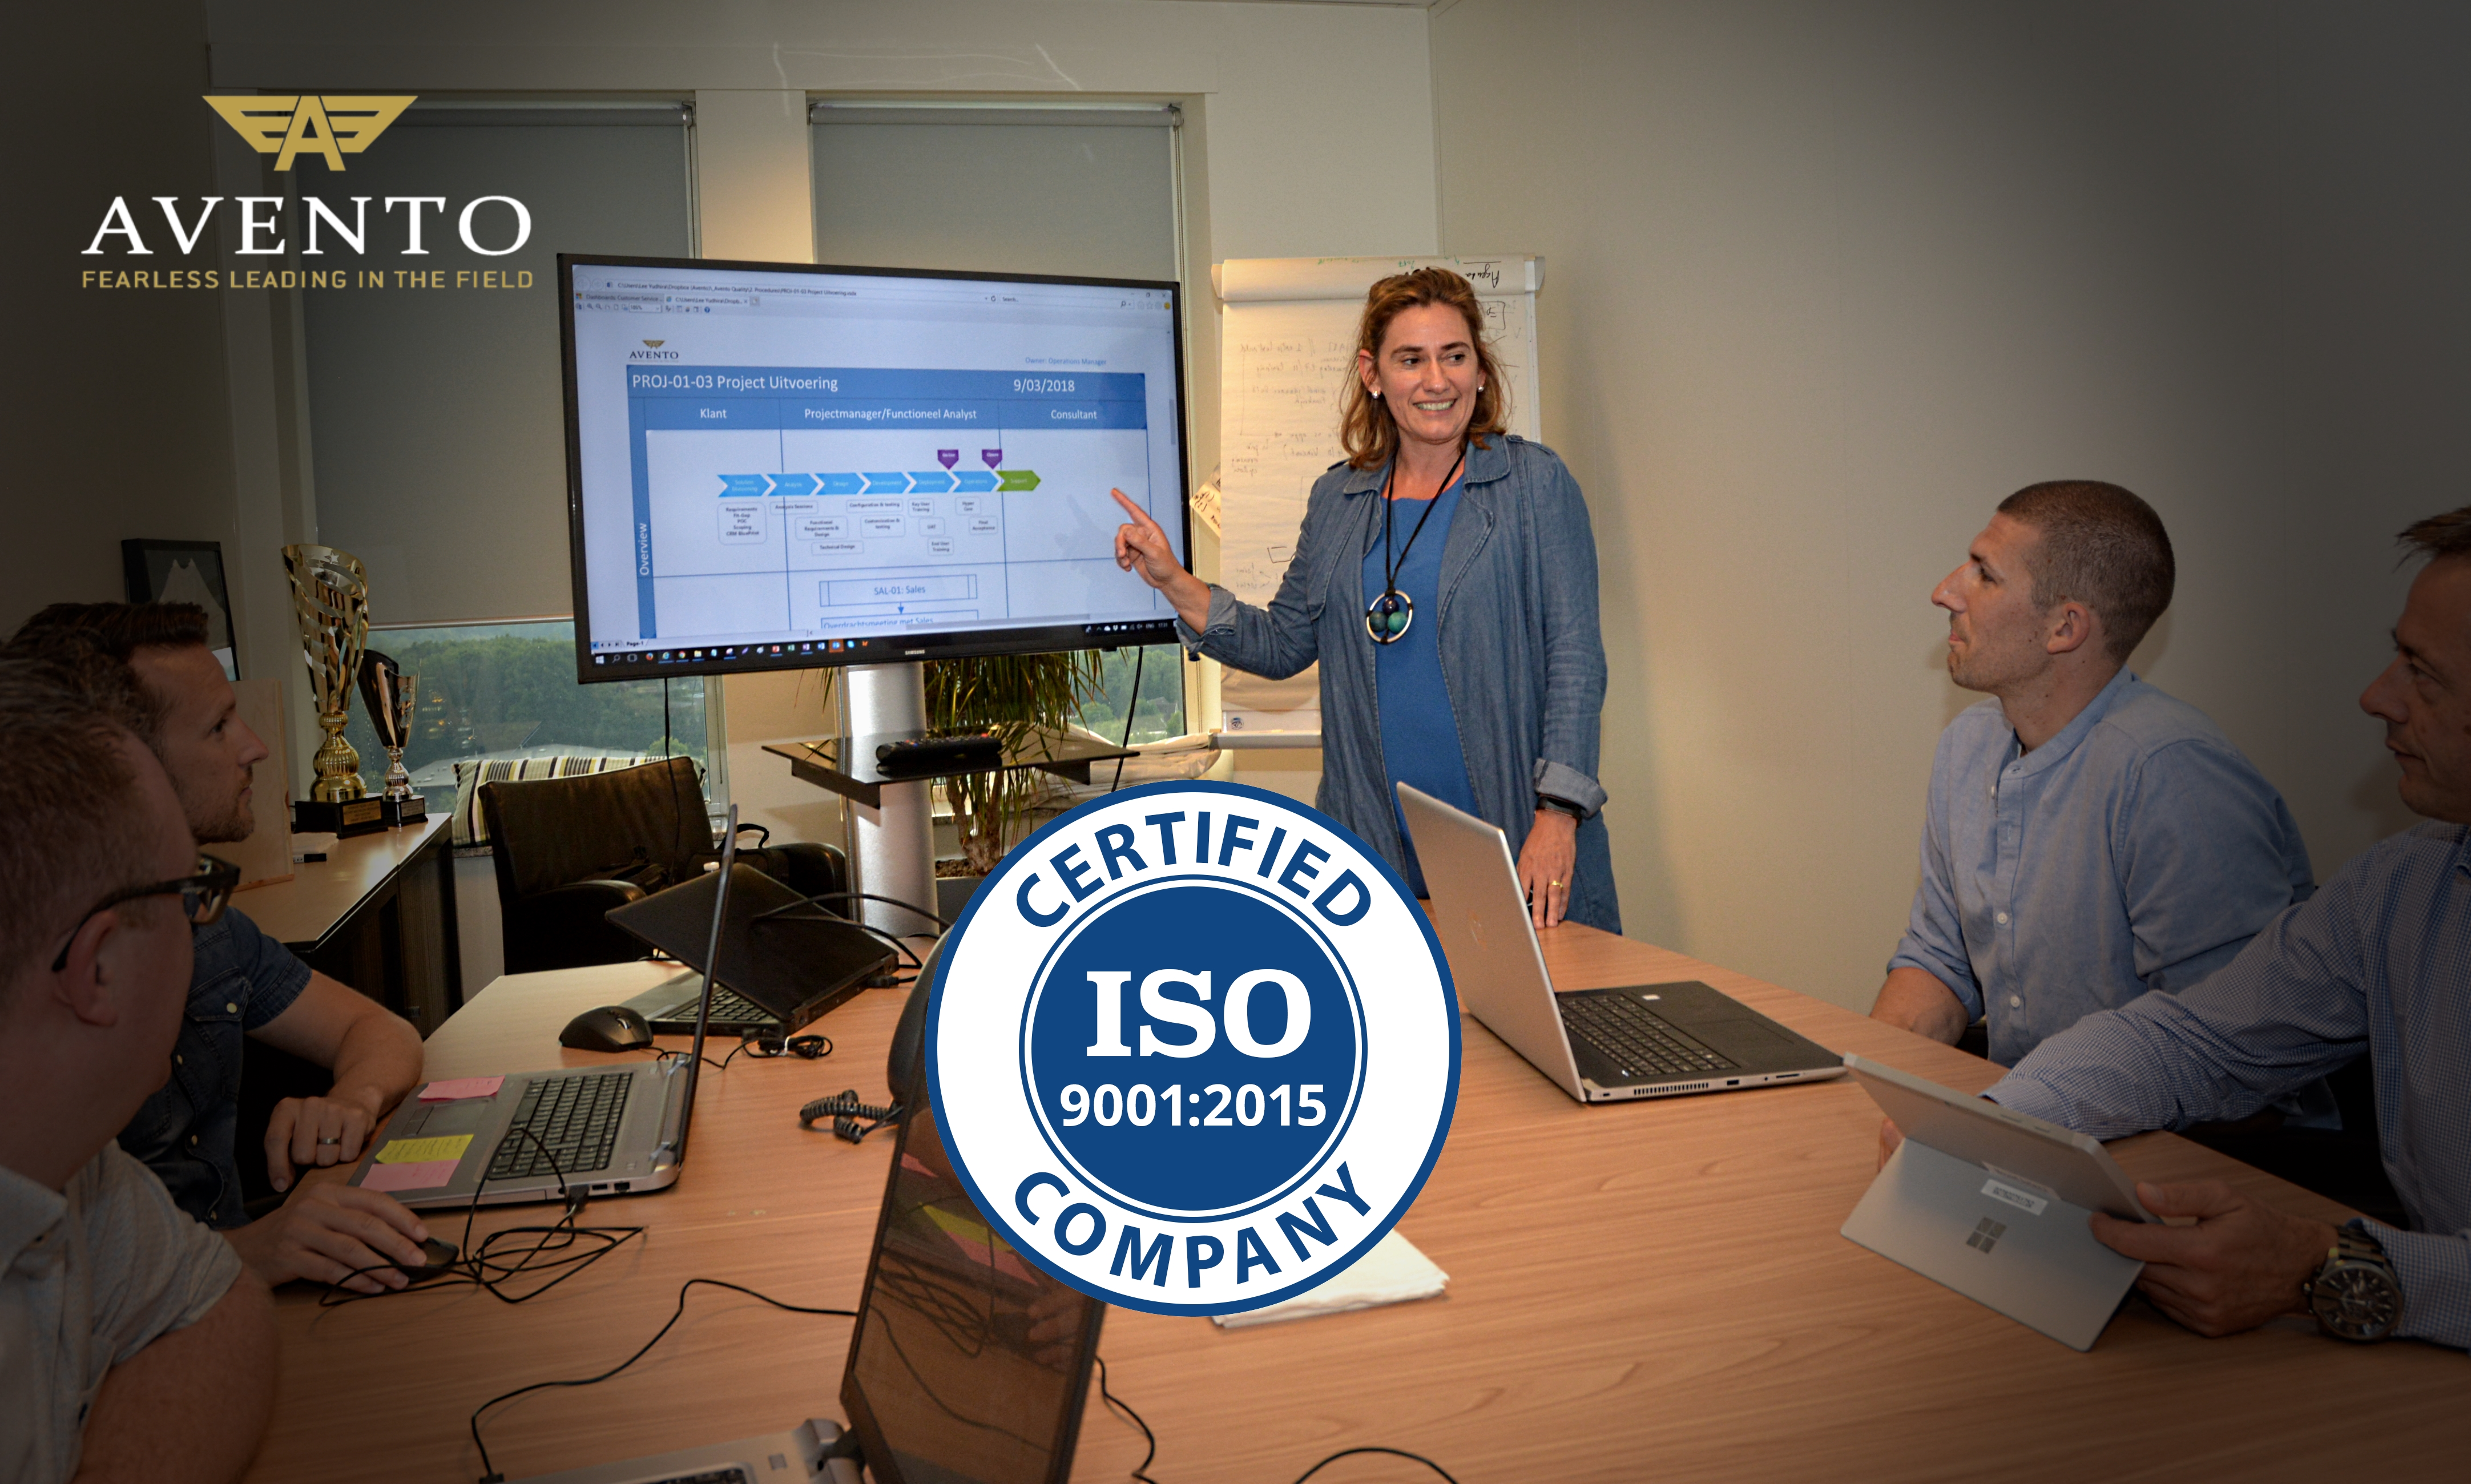 Avento behaalt ISO 9001:2015 certificatie.